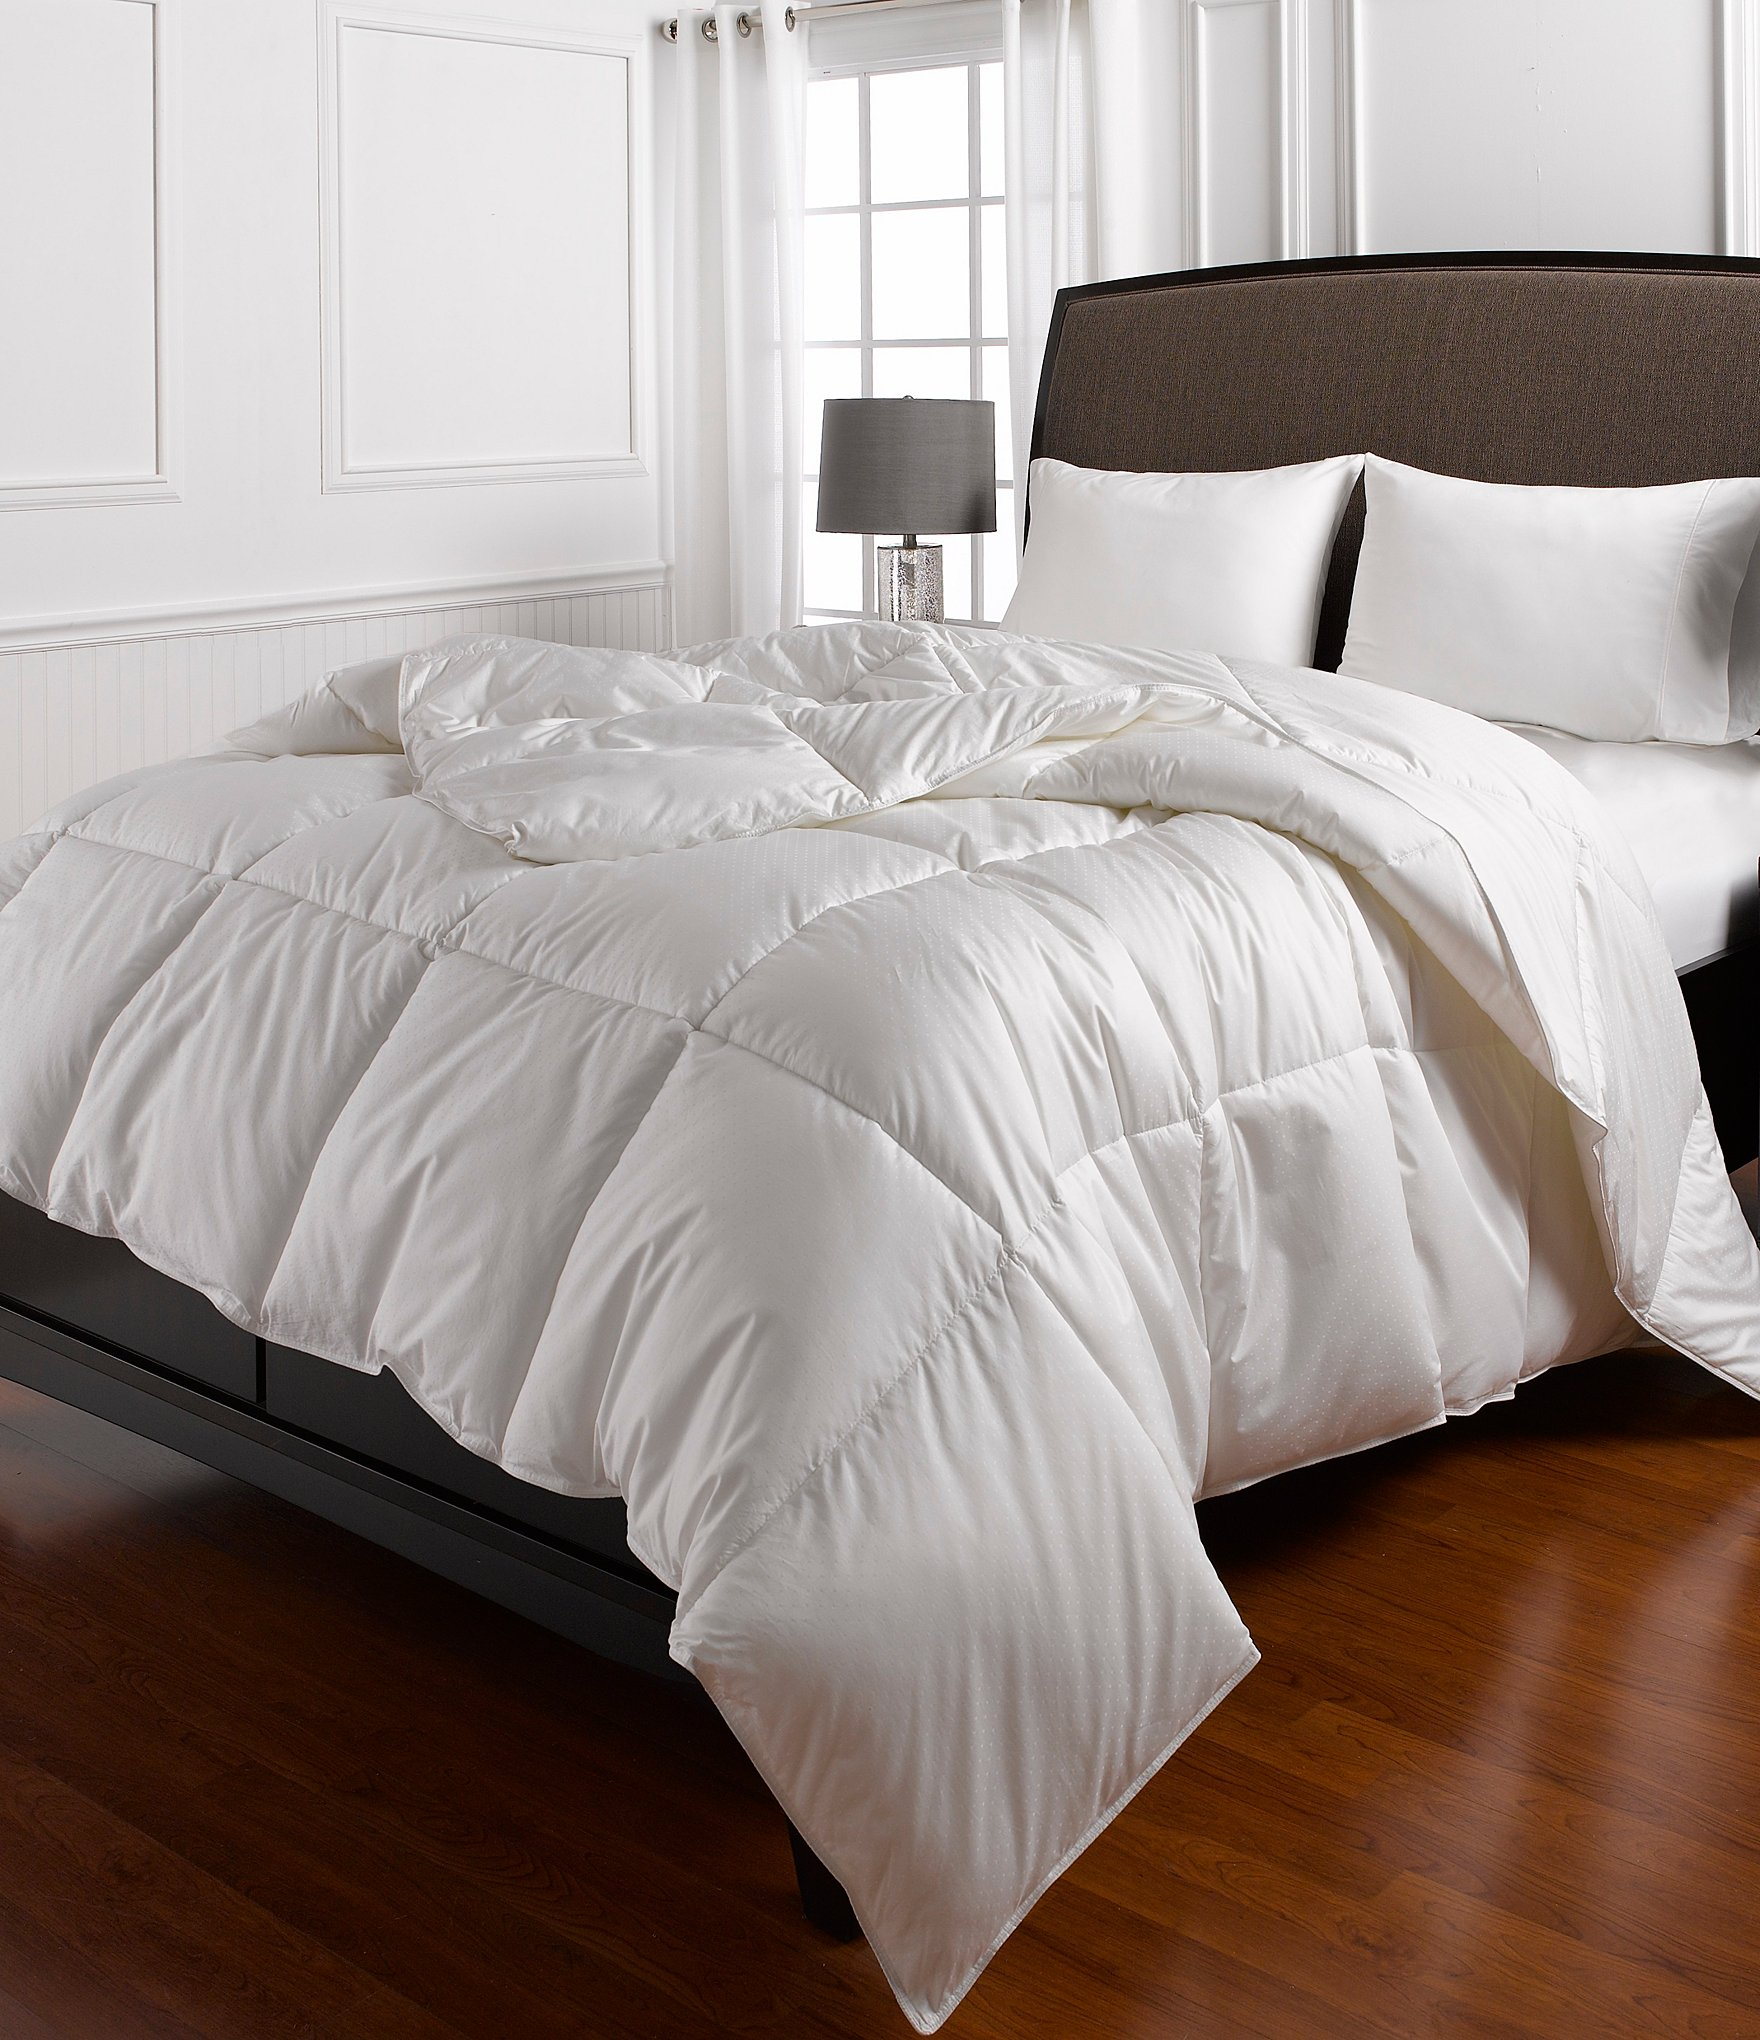 southern living home bedding dillards com